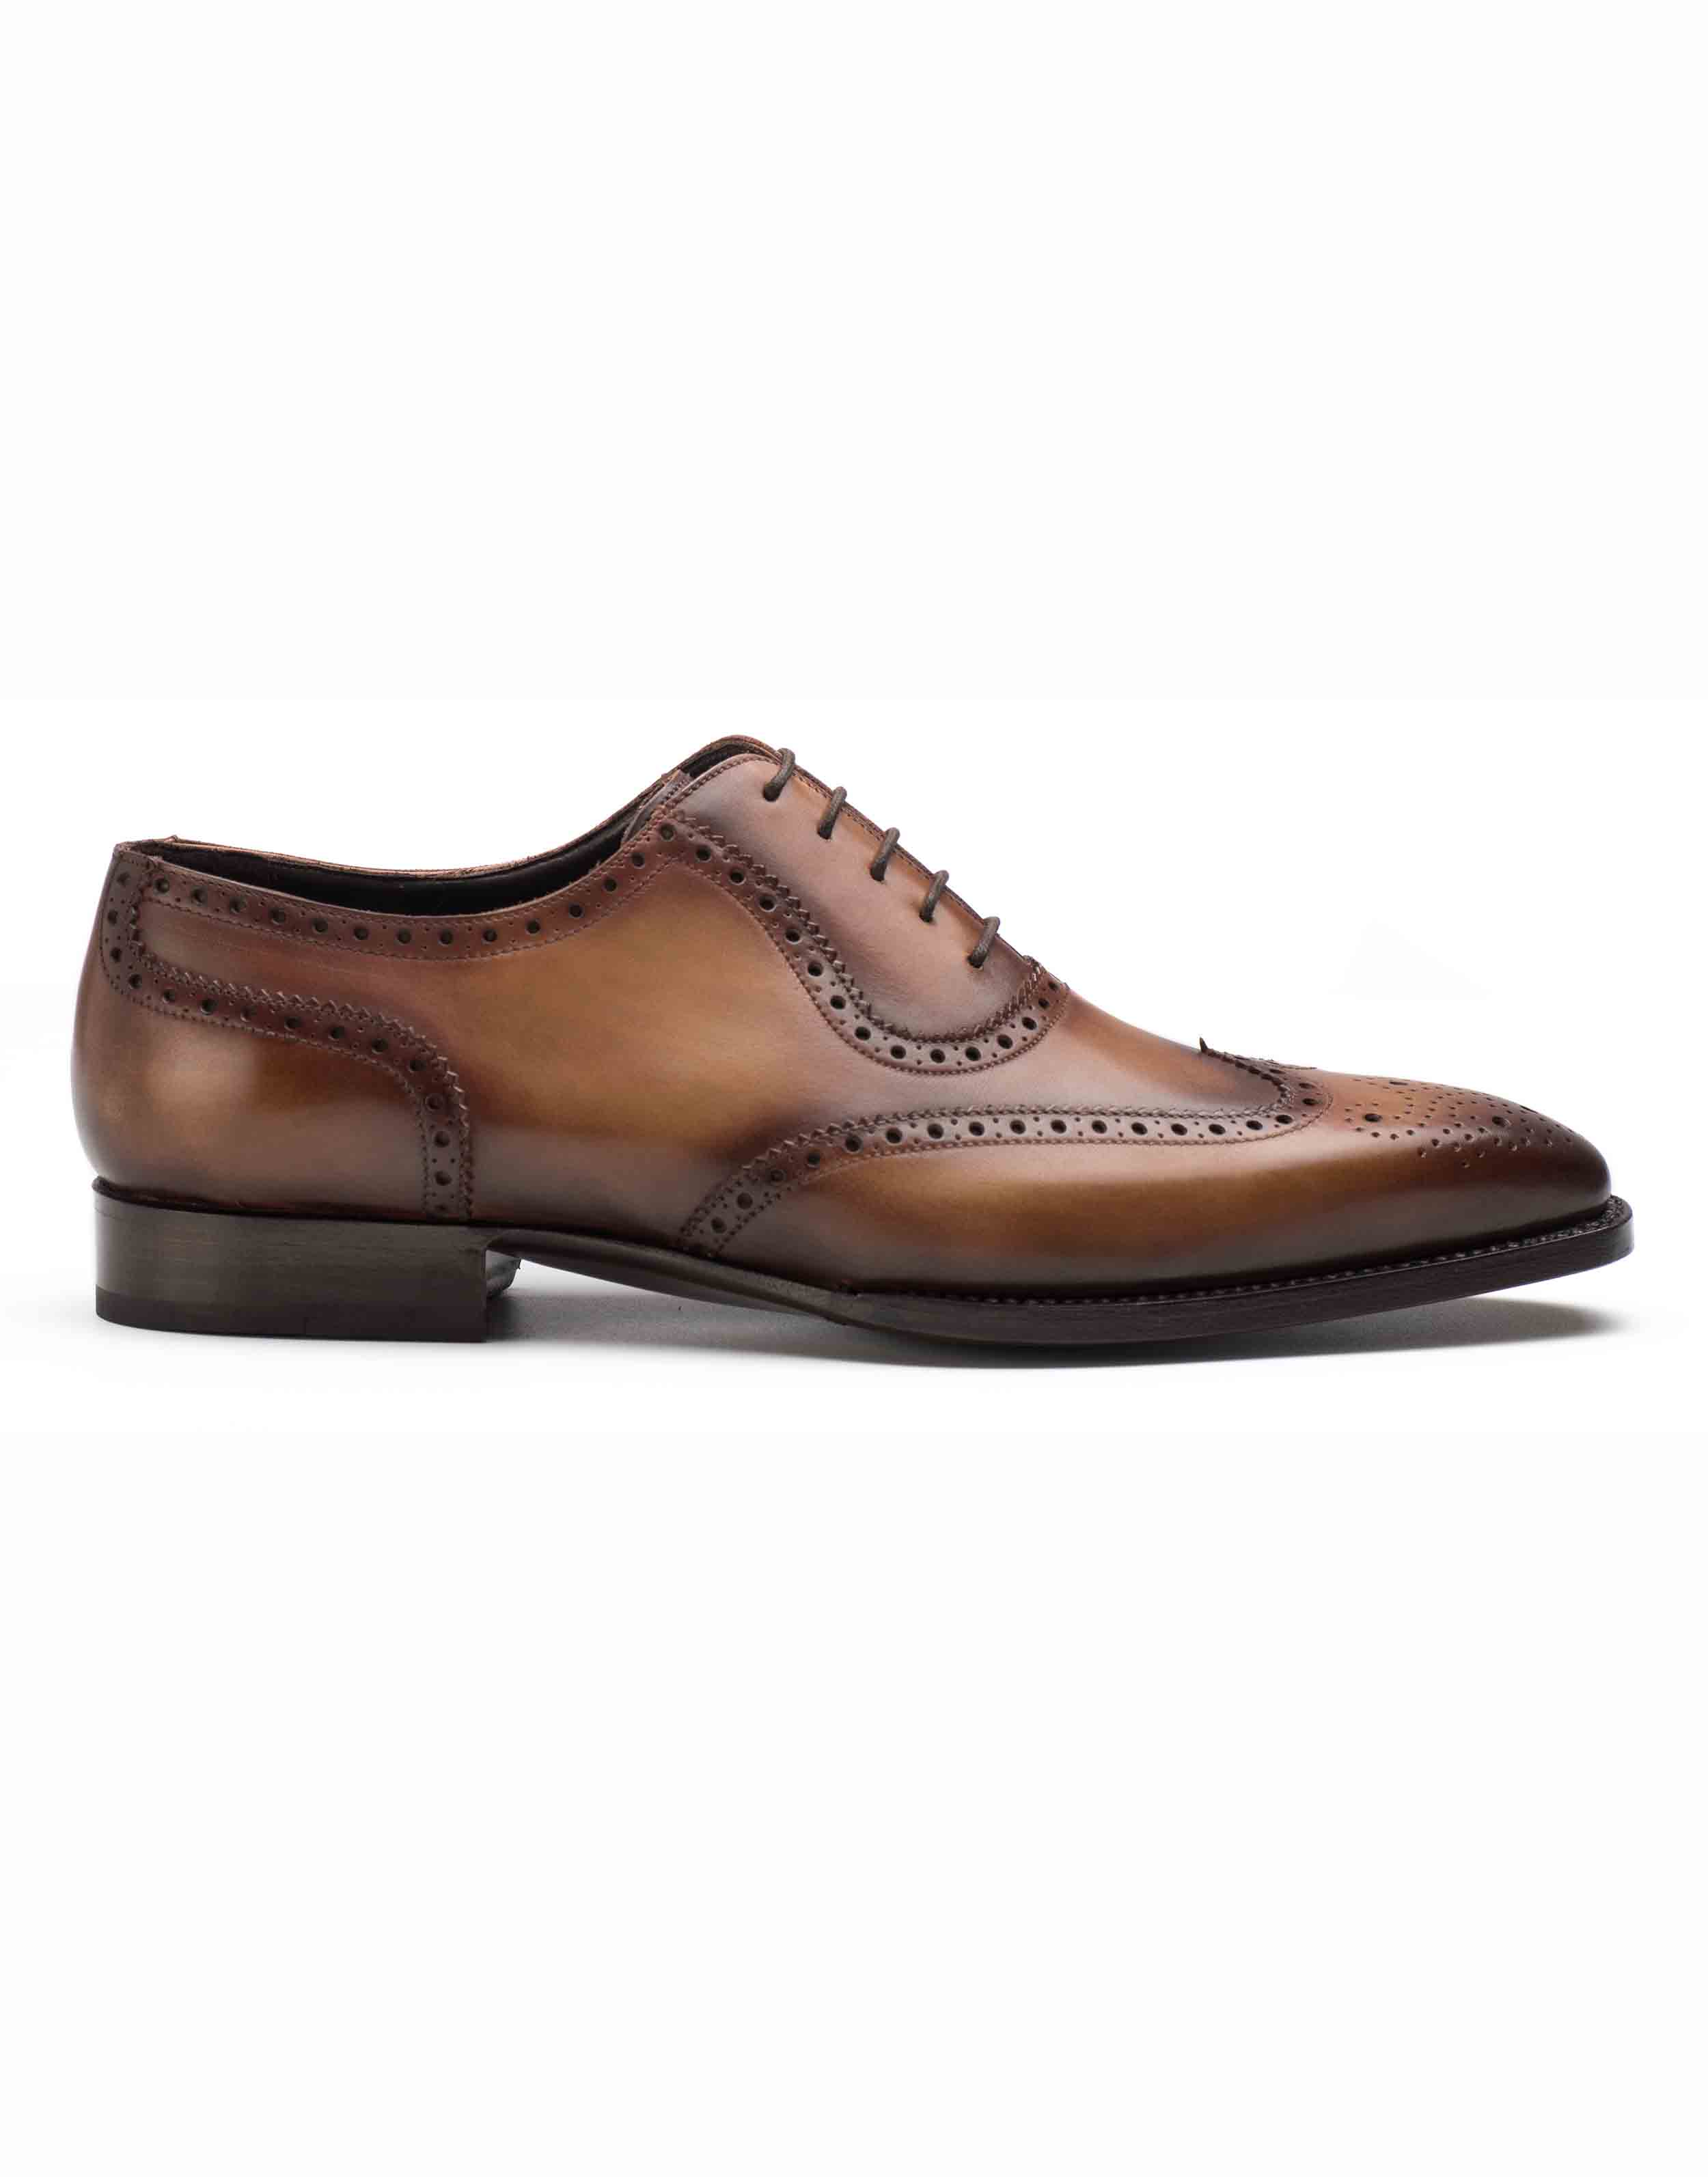 COGNAC BROGUE OXFORD SHOE1